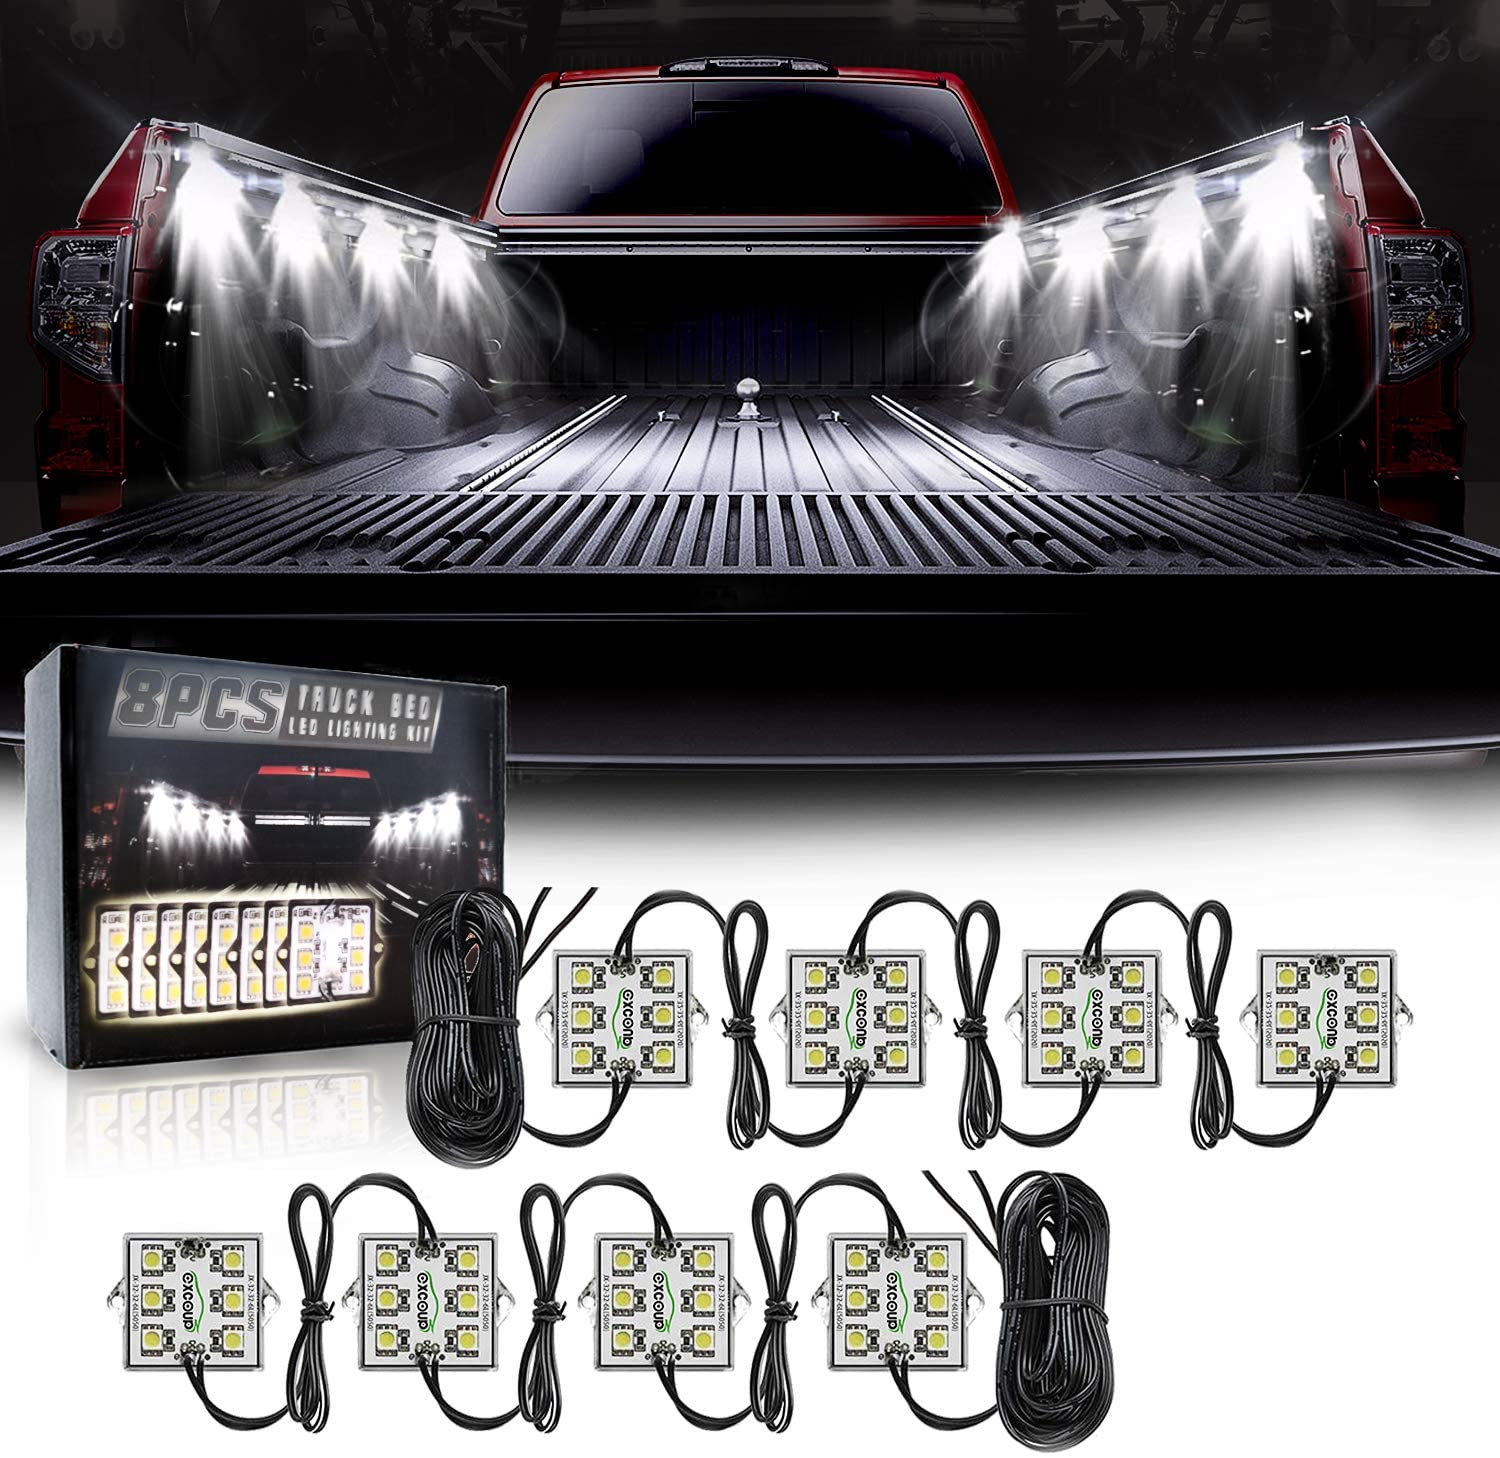 Excoup LED Lighting Kit for Truck Bed